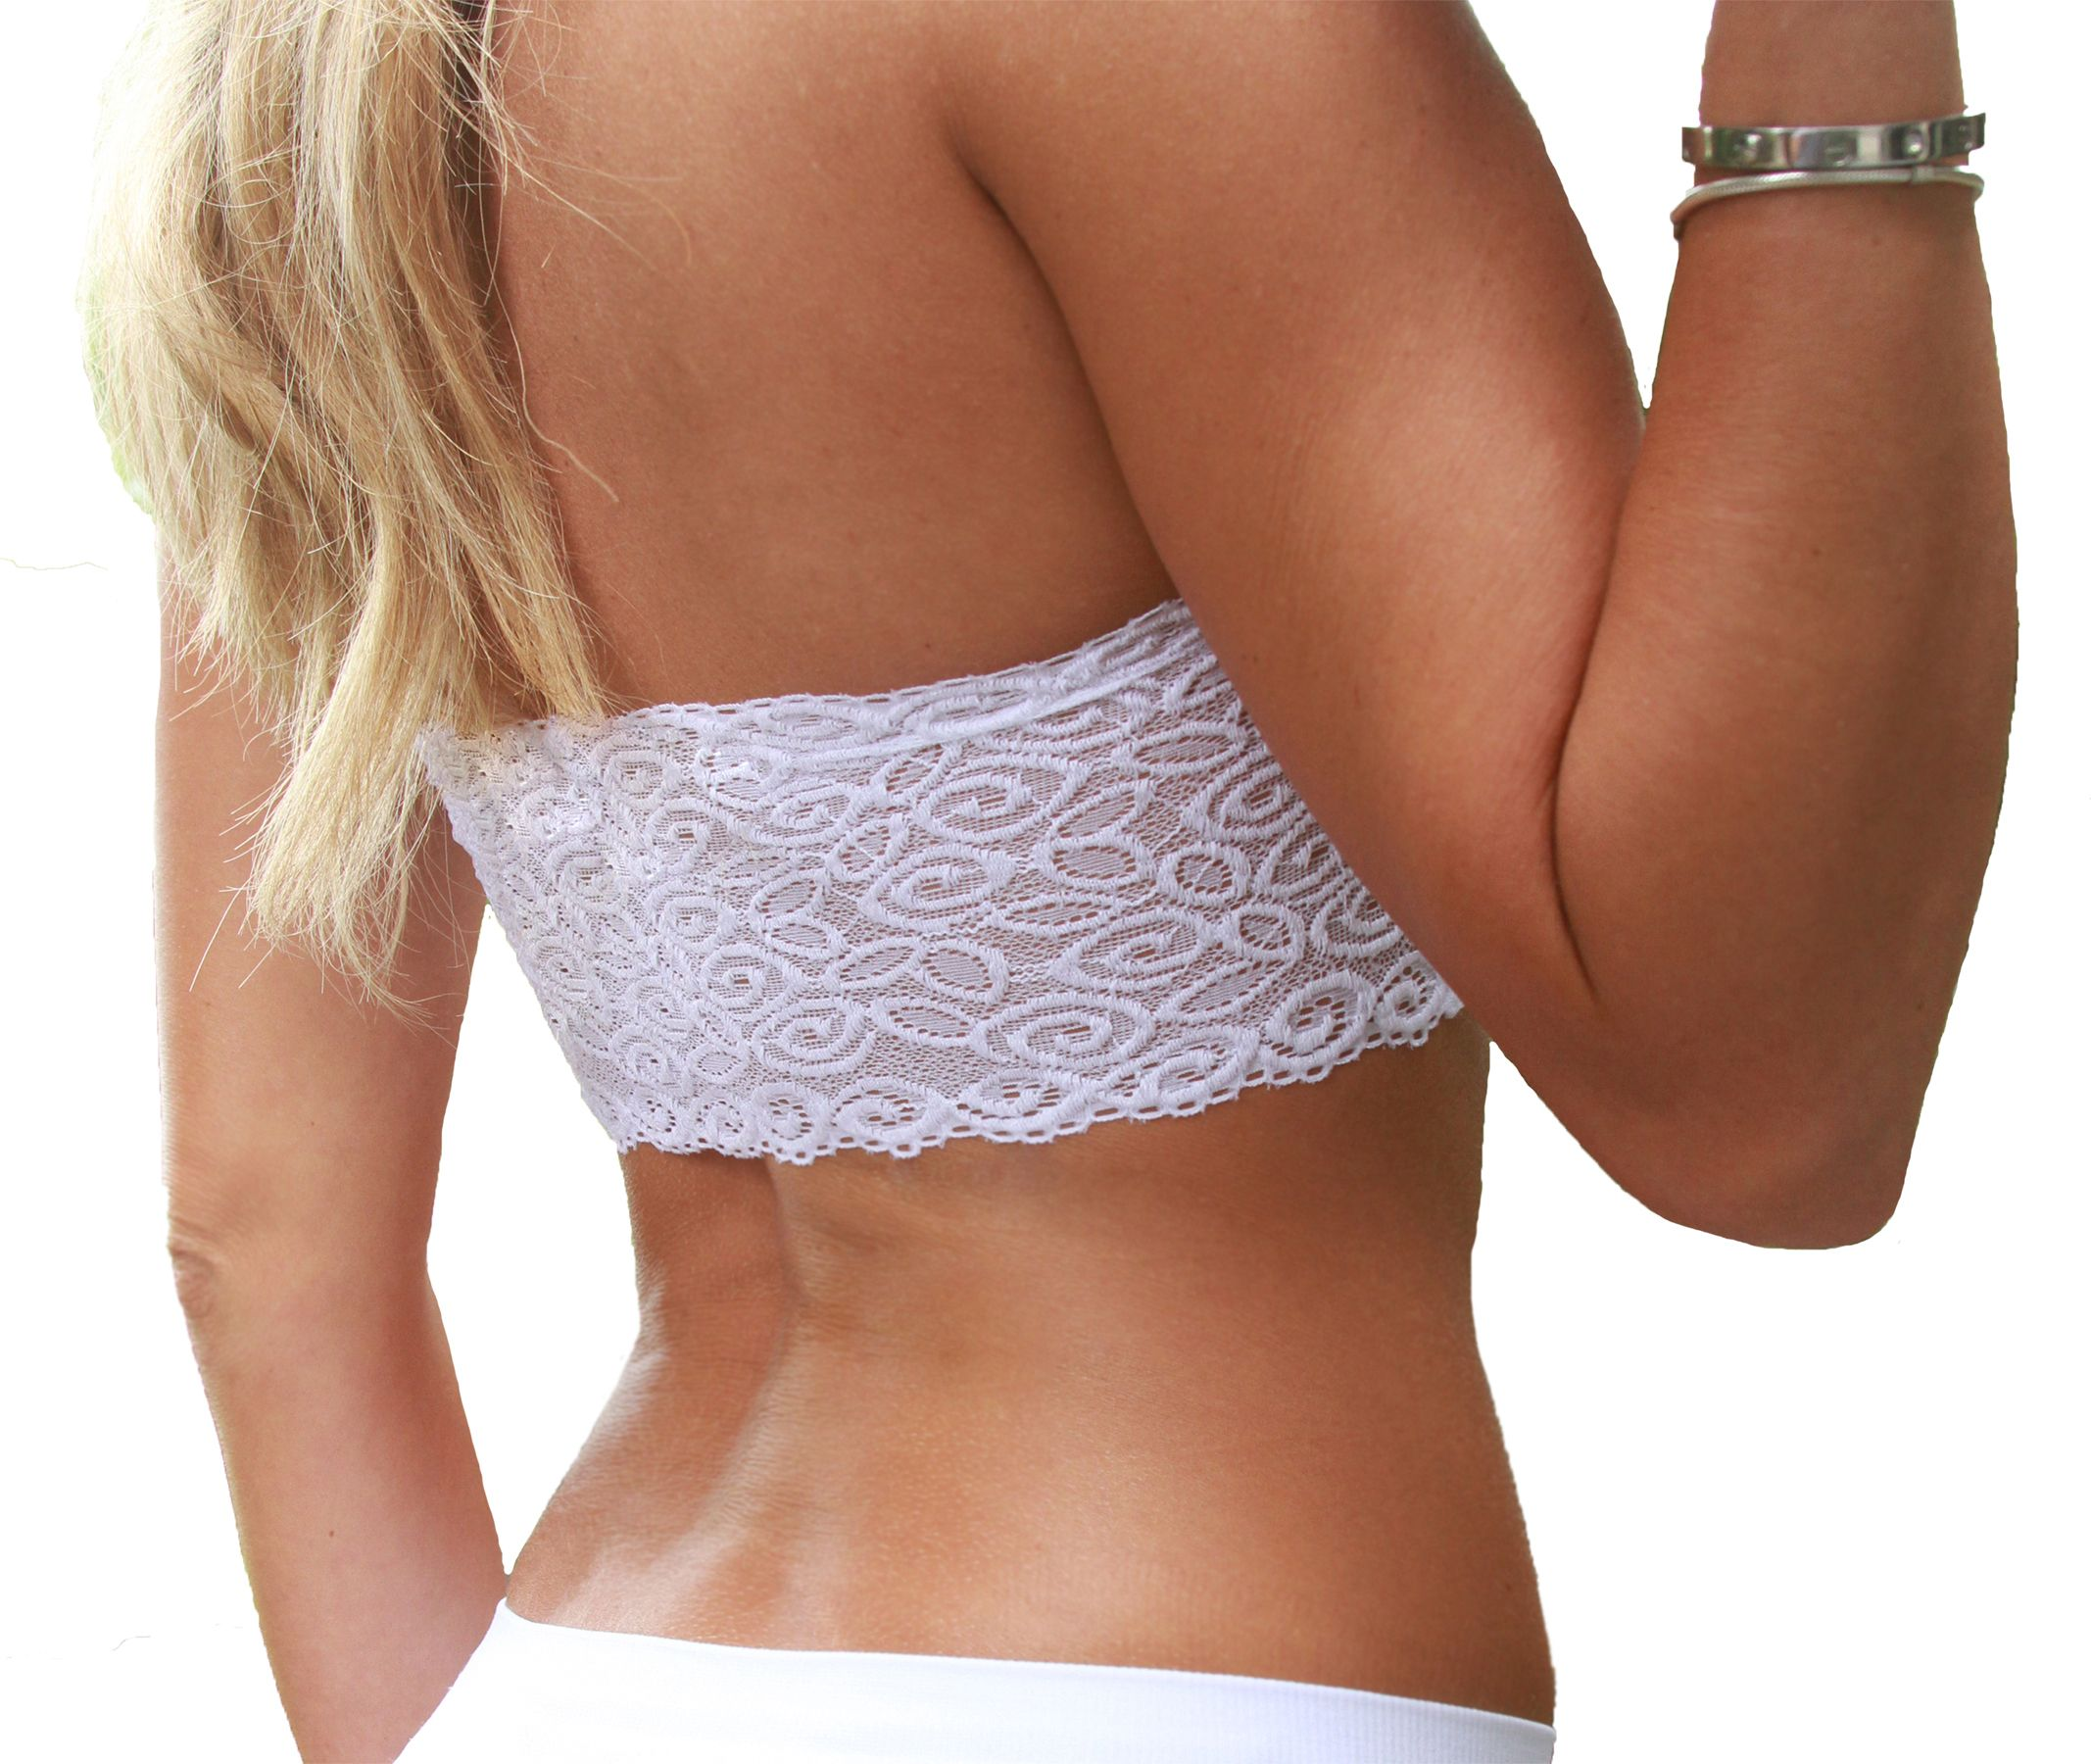 Coobie Bra Strapless Bandeau Lace Back in White | Fitness Wear ...